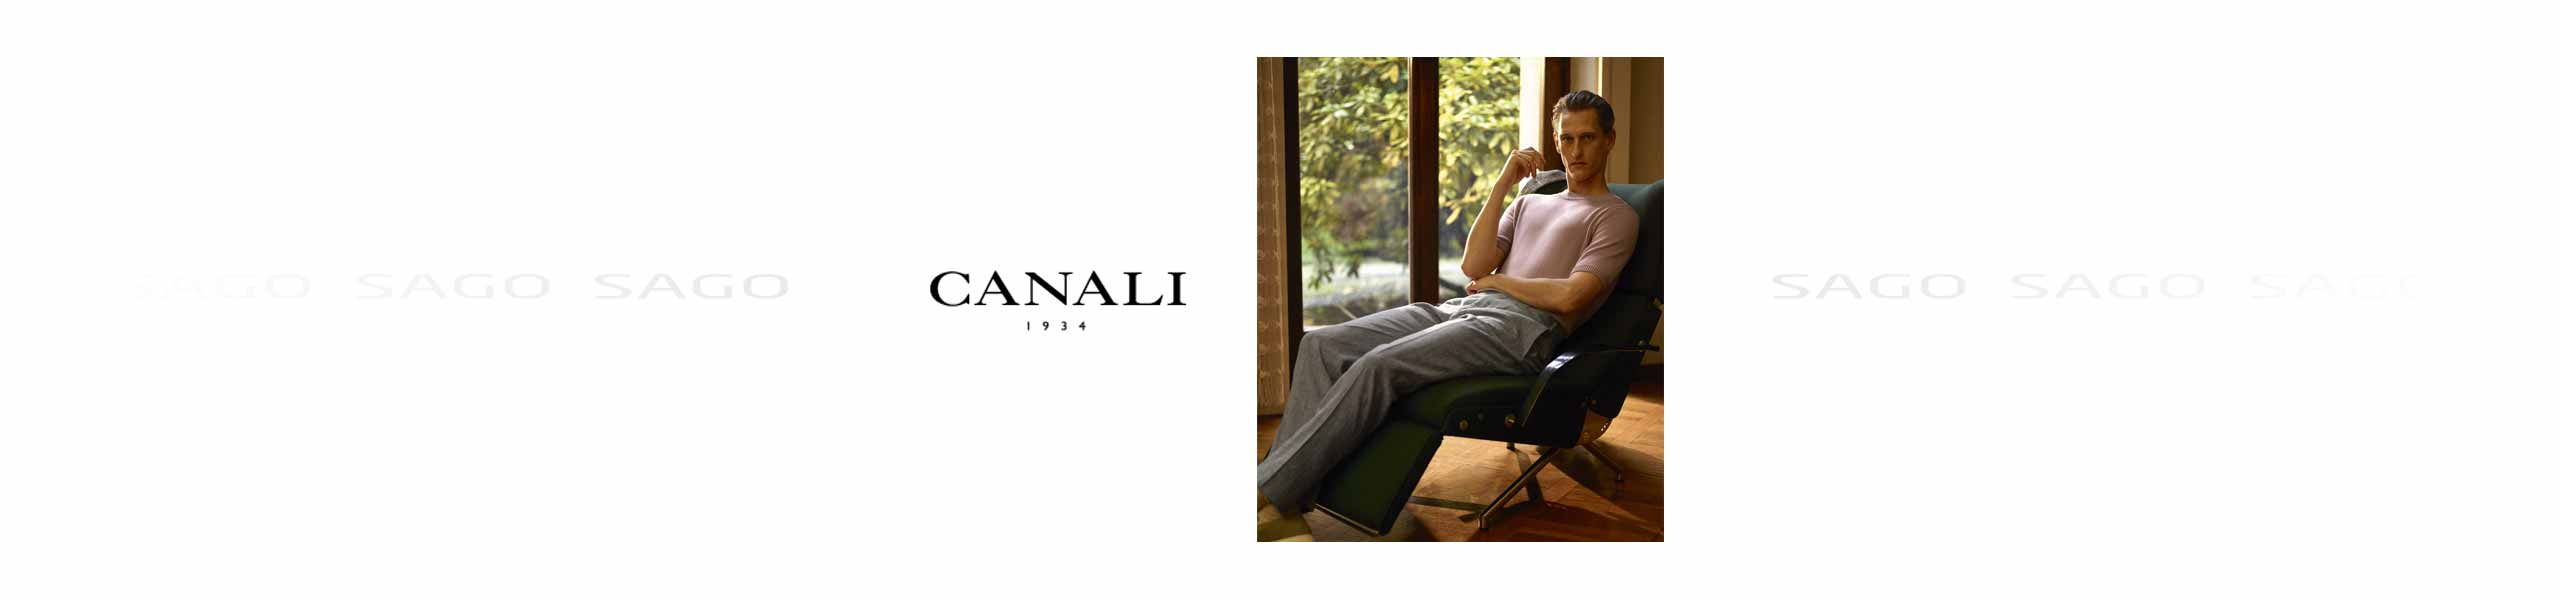 2019-canali-wide-02